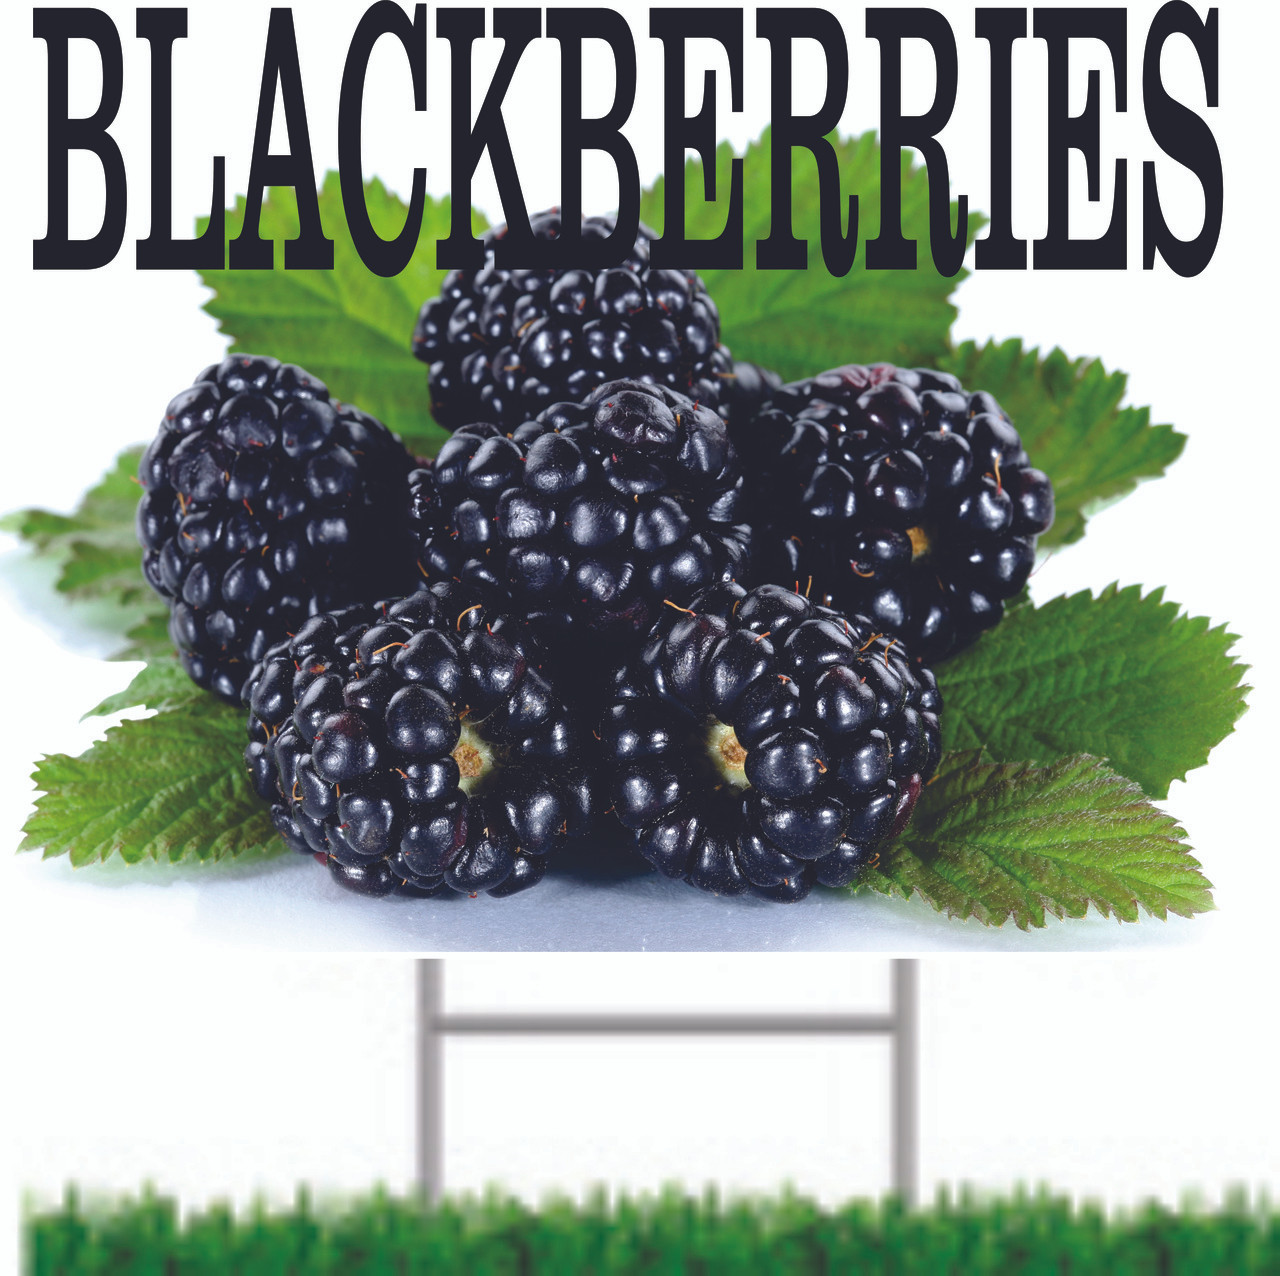 Blackberries Yard/Road Sign Nice for Farm Stand or Farmers Markets.